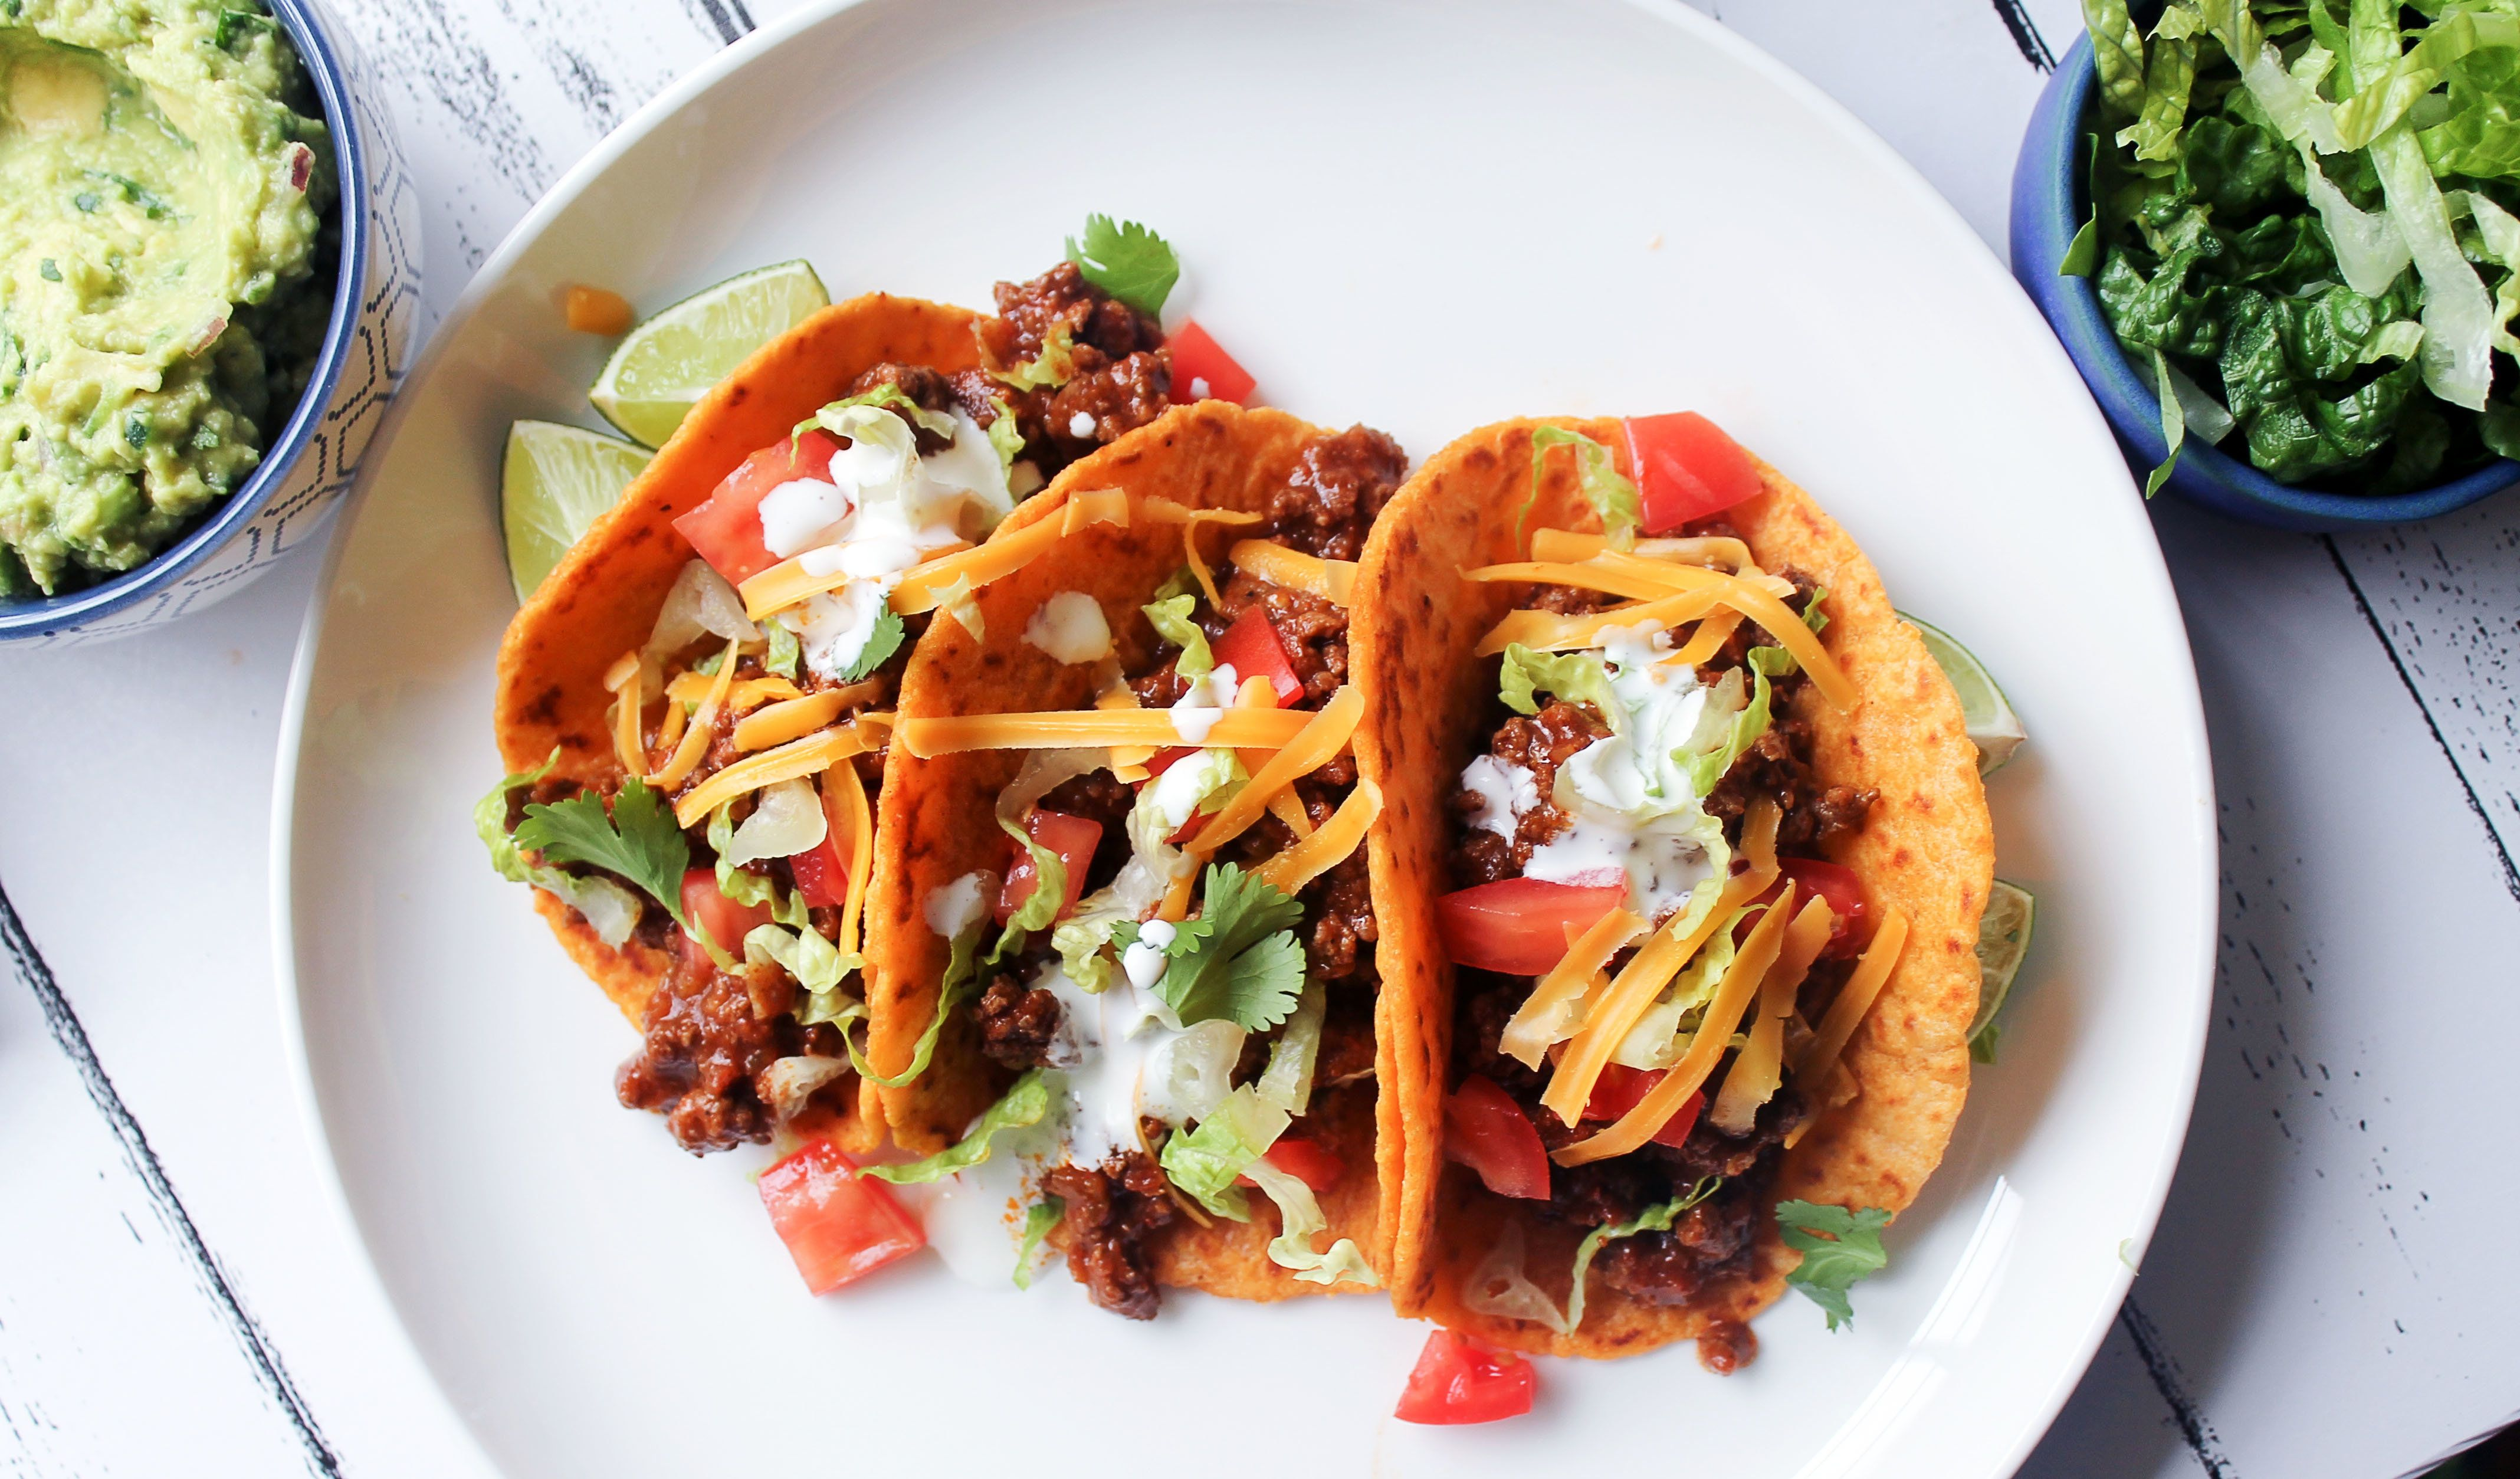 How To Make Your Own Doritos Tacos (But Better) At